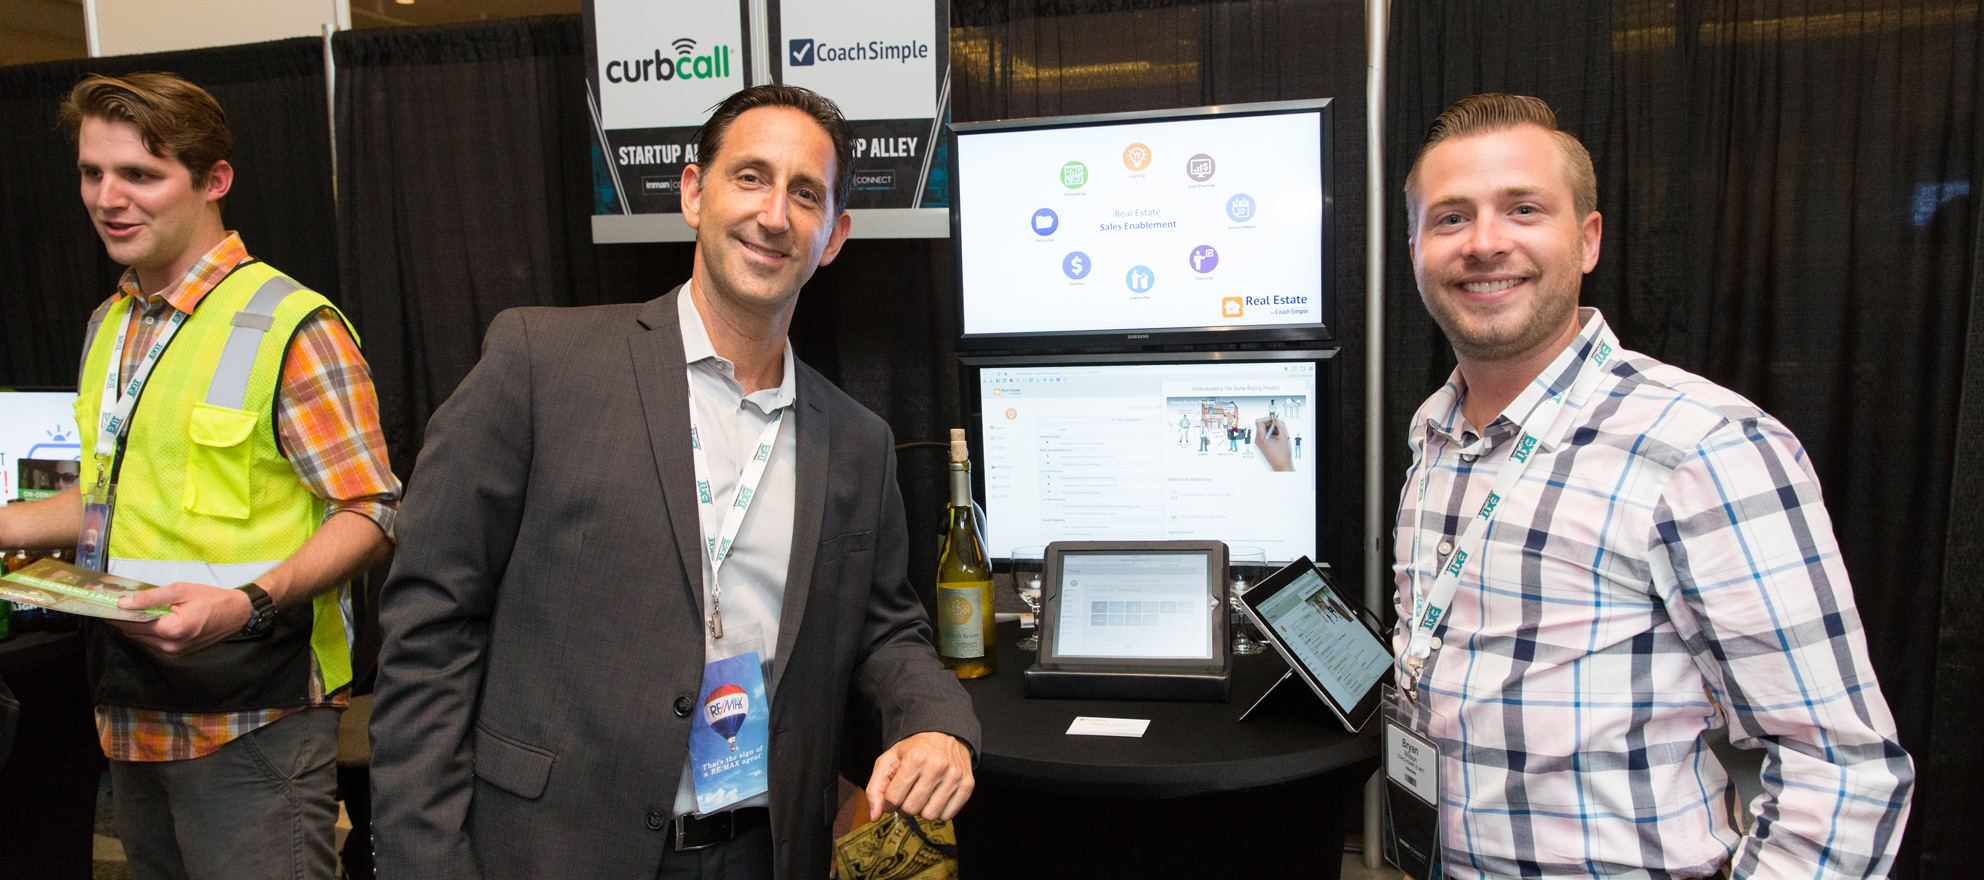 startup alley icny 2017